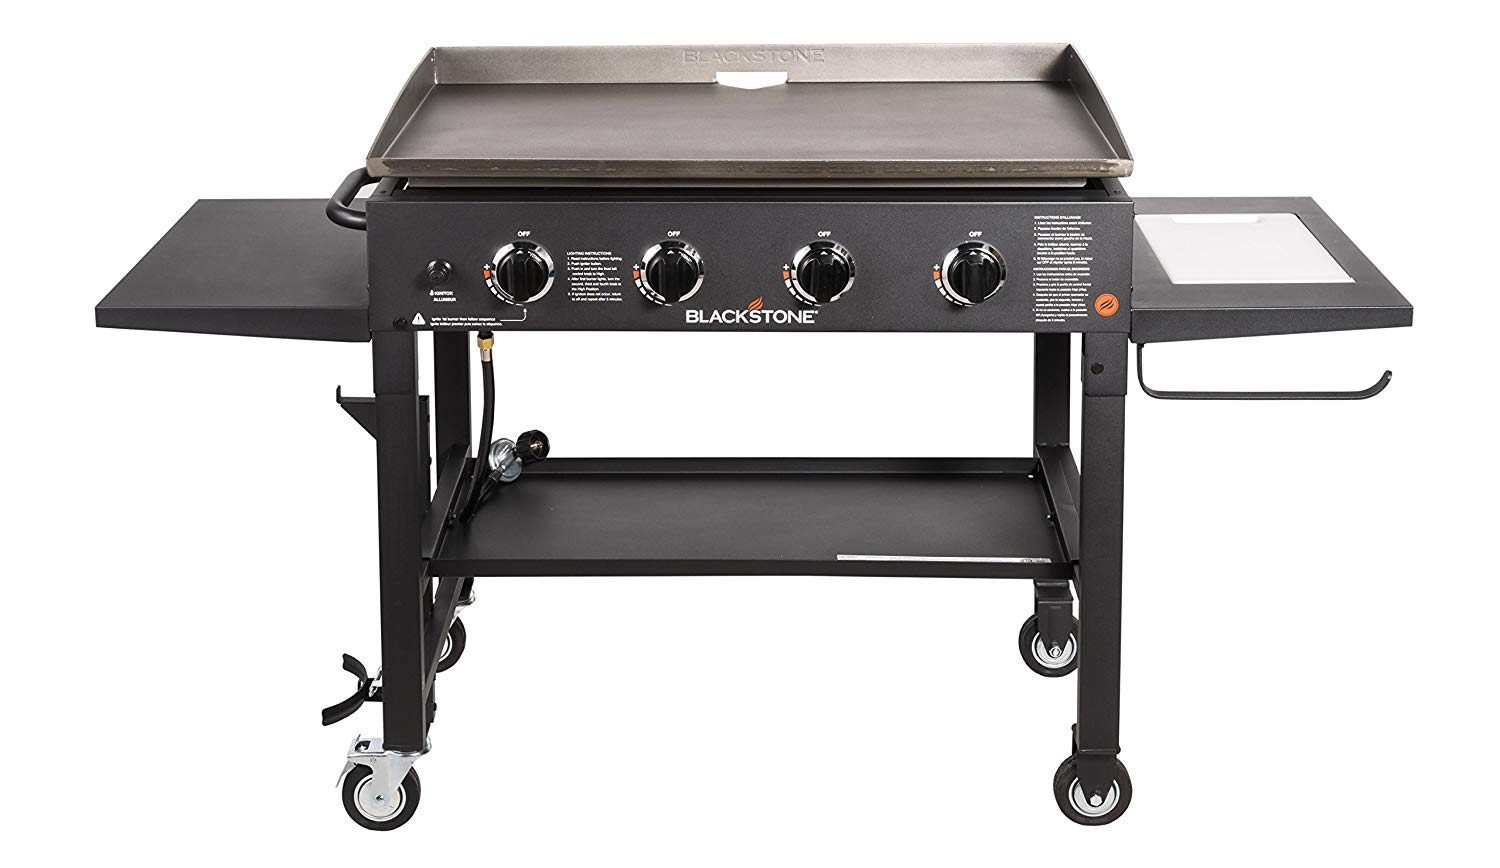 Blackstone 36 inch Outdoor Flat Top Gas Grill Griddle Station - 4-burner - Propane Fueled